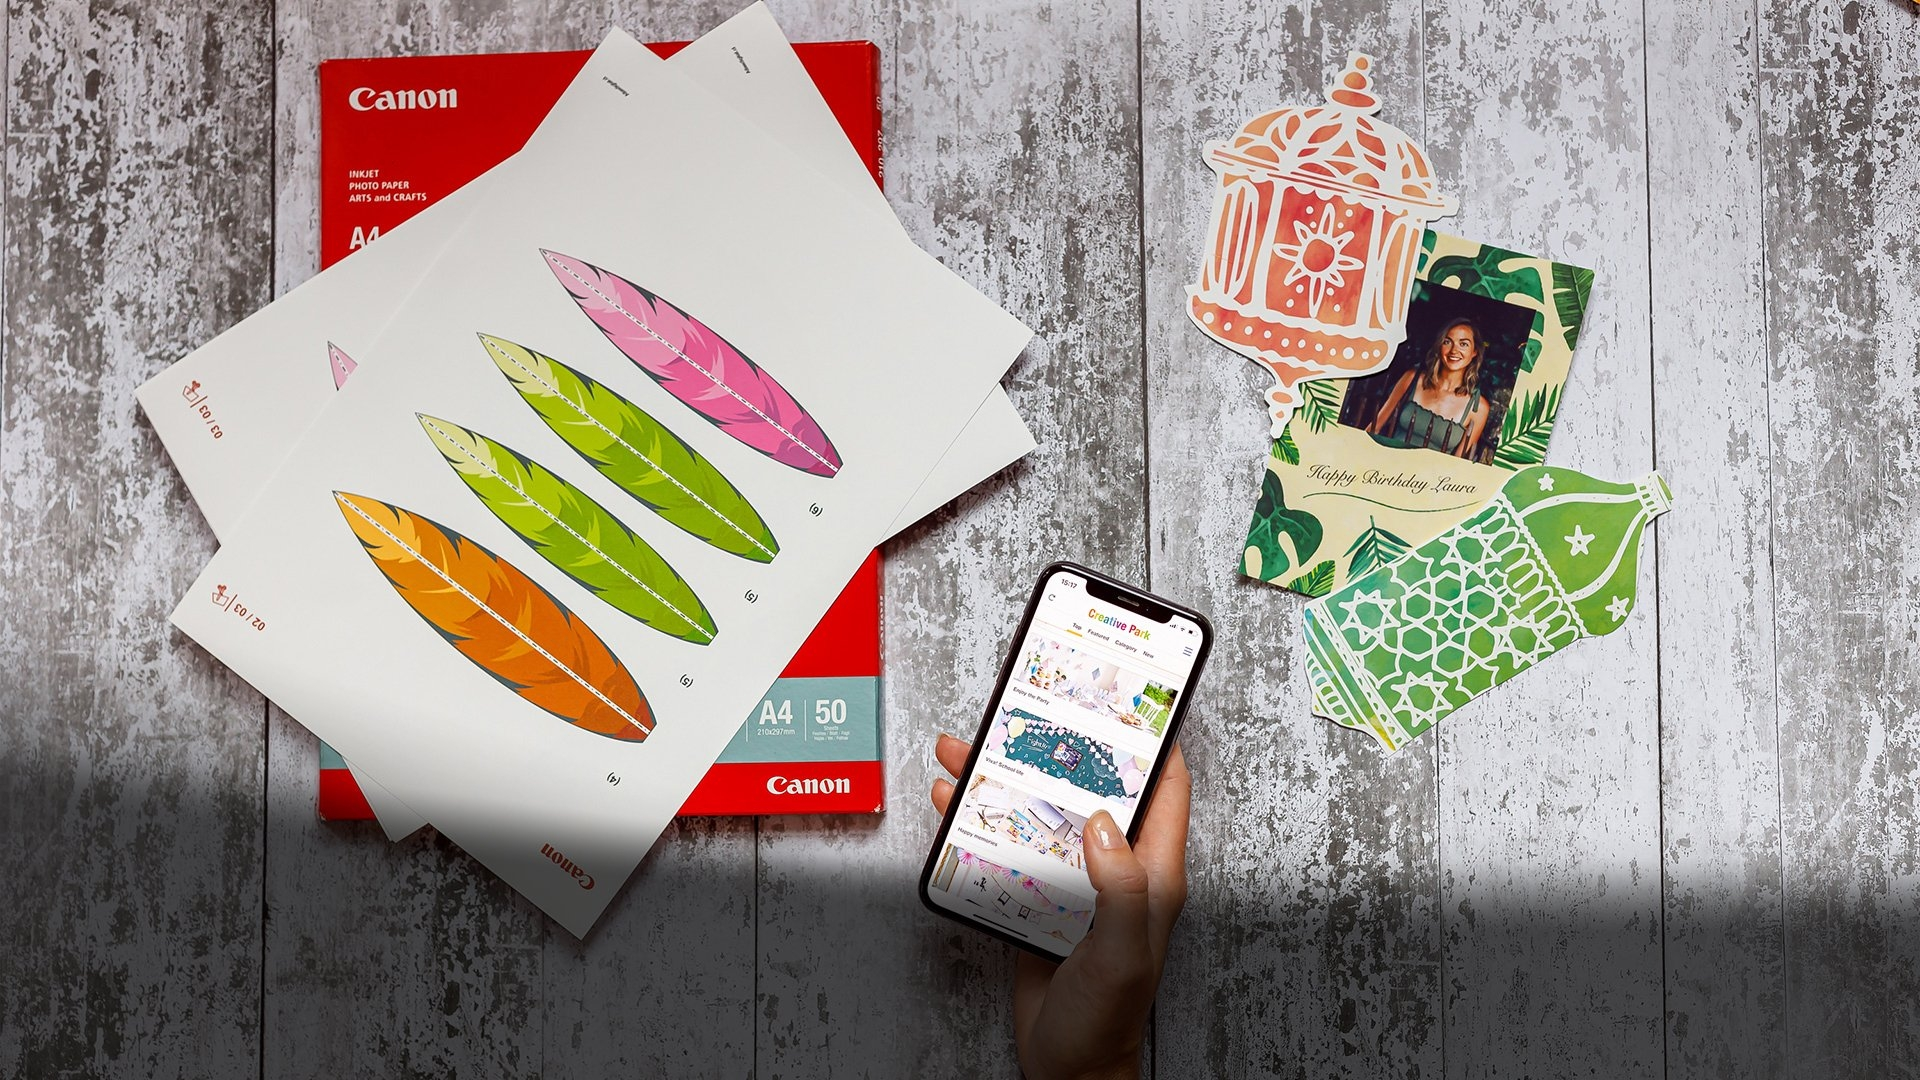 A hand holding a smartphone displaying the Creative Park app. Canon printer paper and Creative Park templates and designs are arranged on the table.